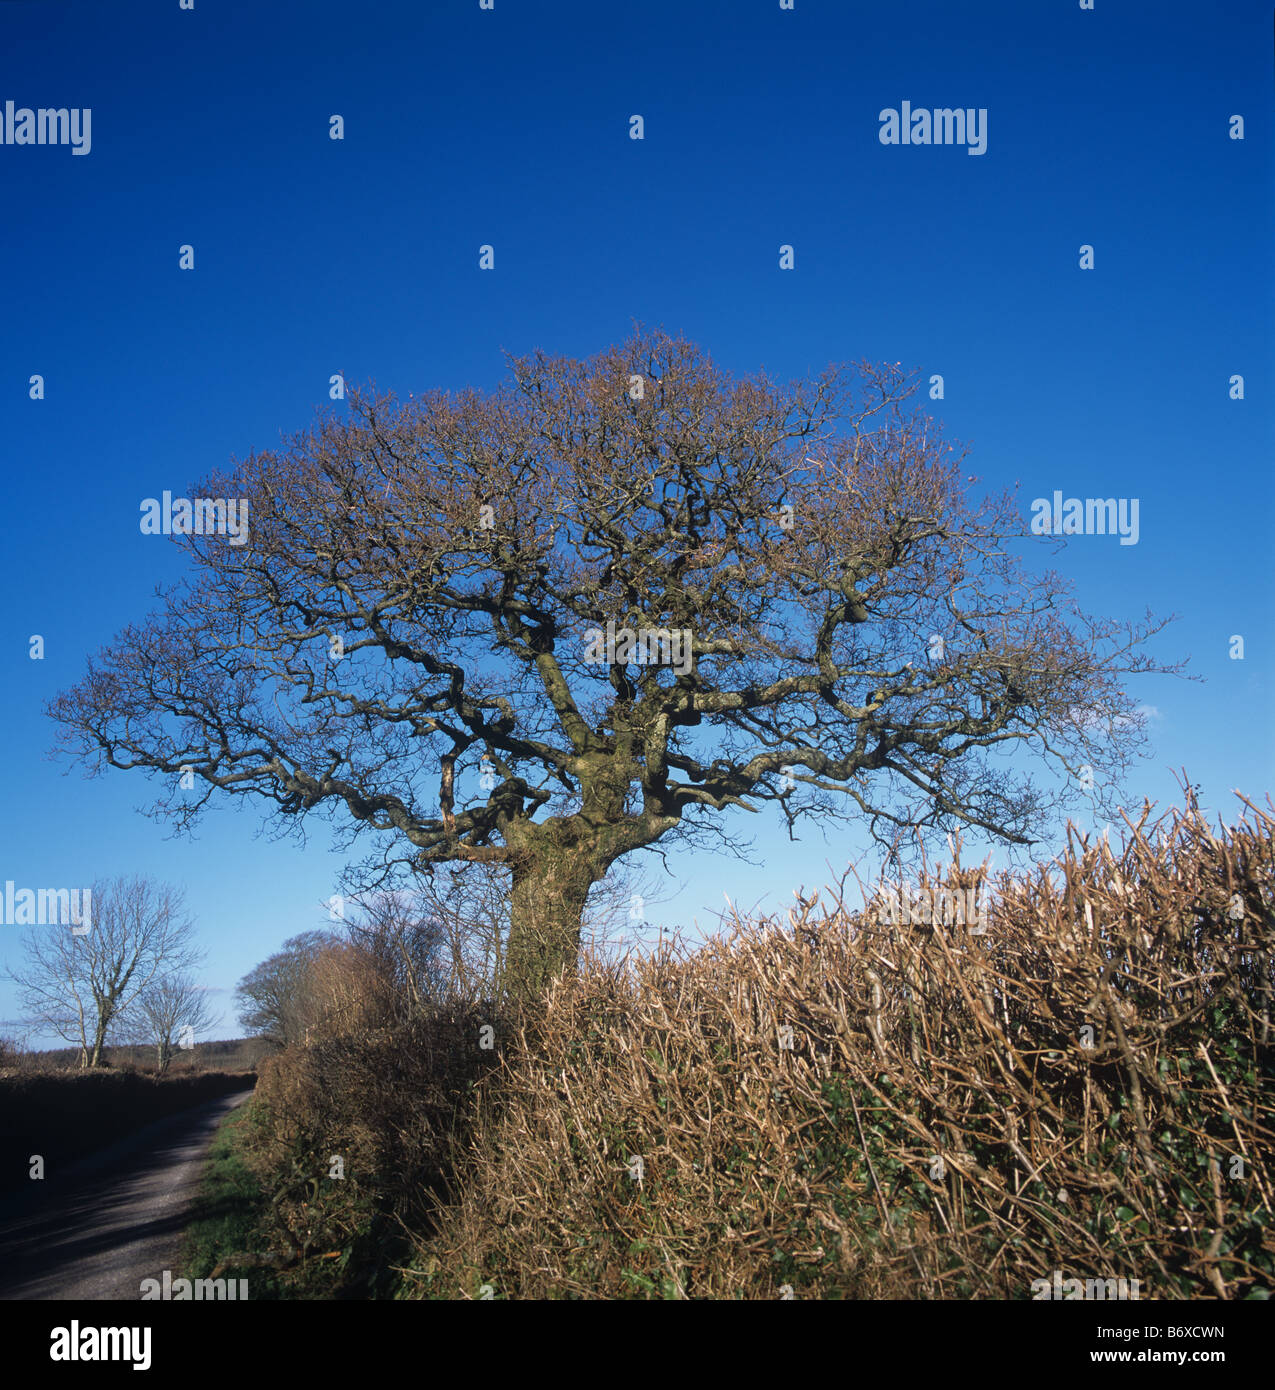 Slightly twisted mature leafless oak tree in Devon hedgerow against a blue winter sky - Stock Image